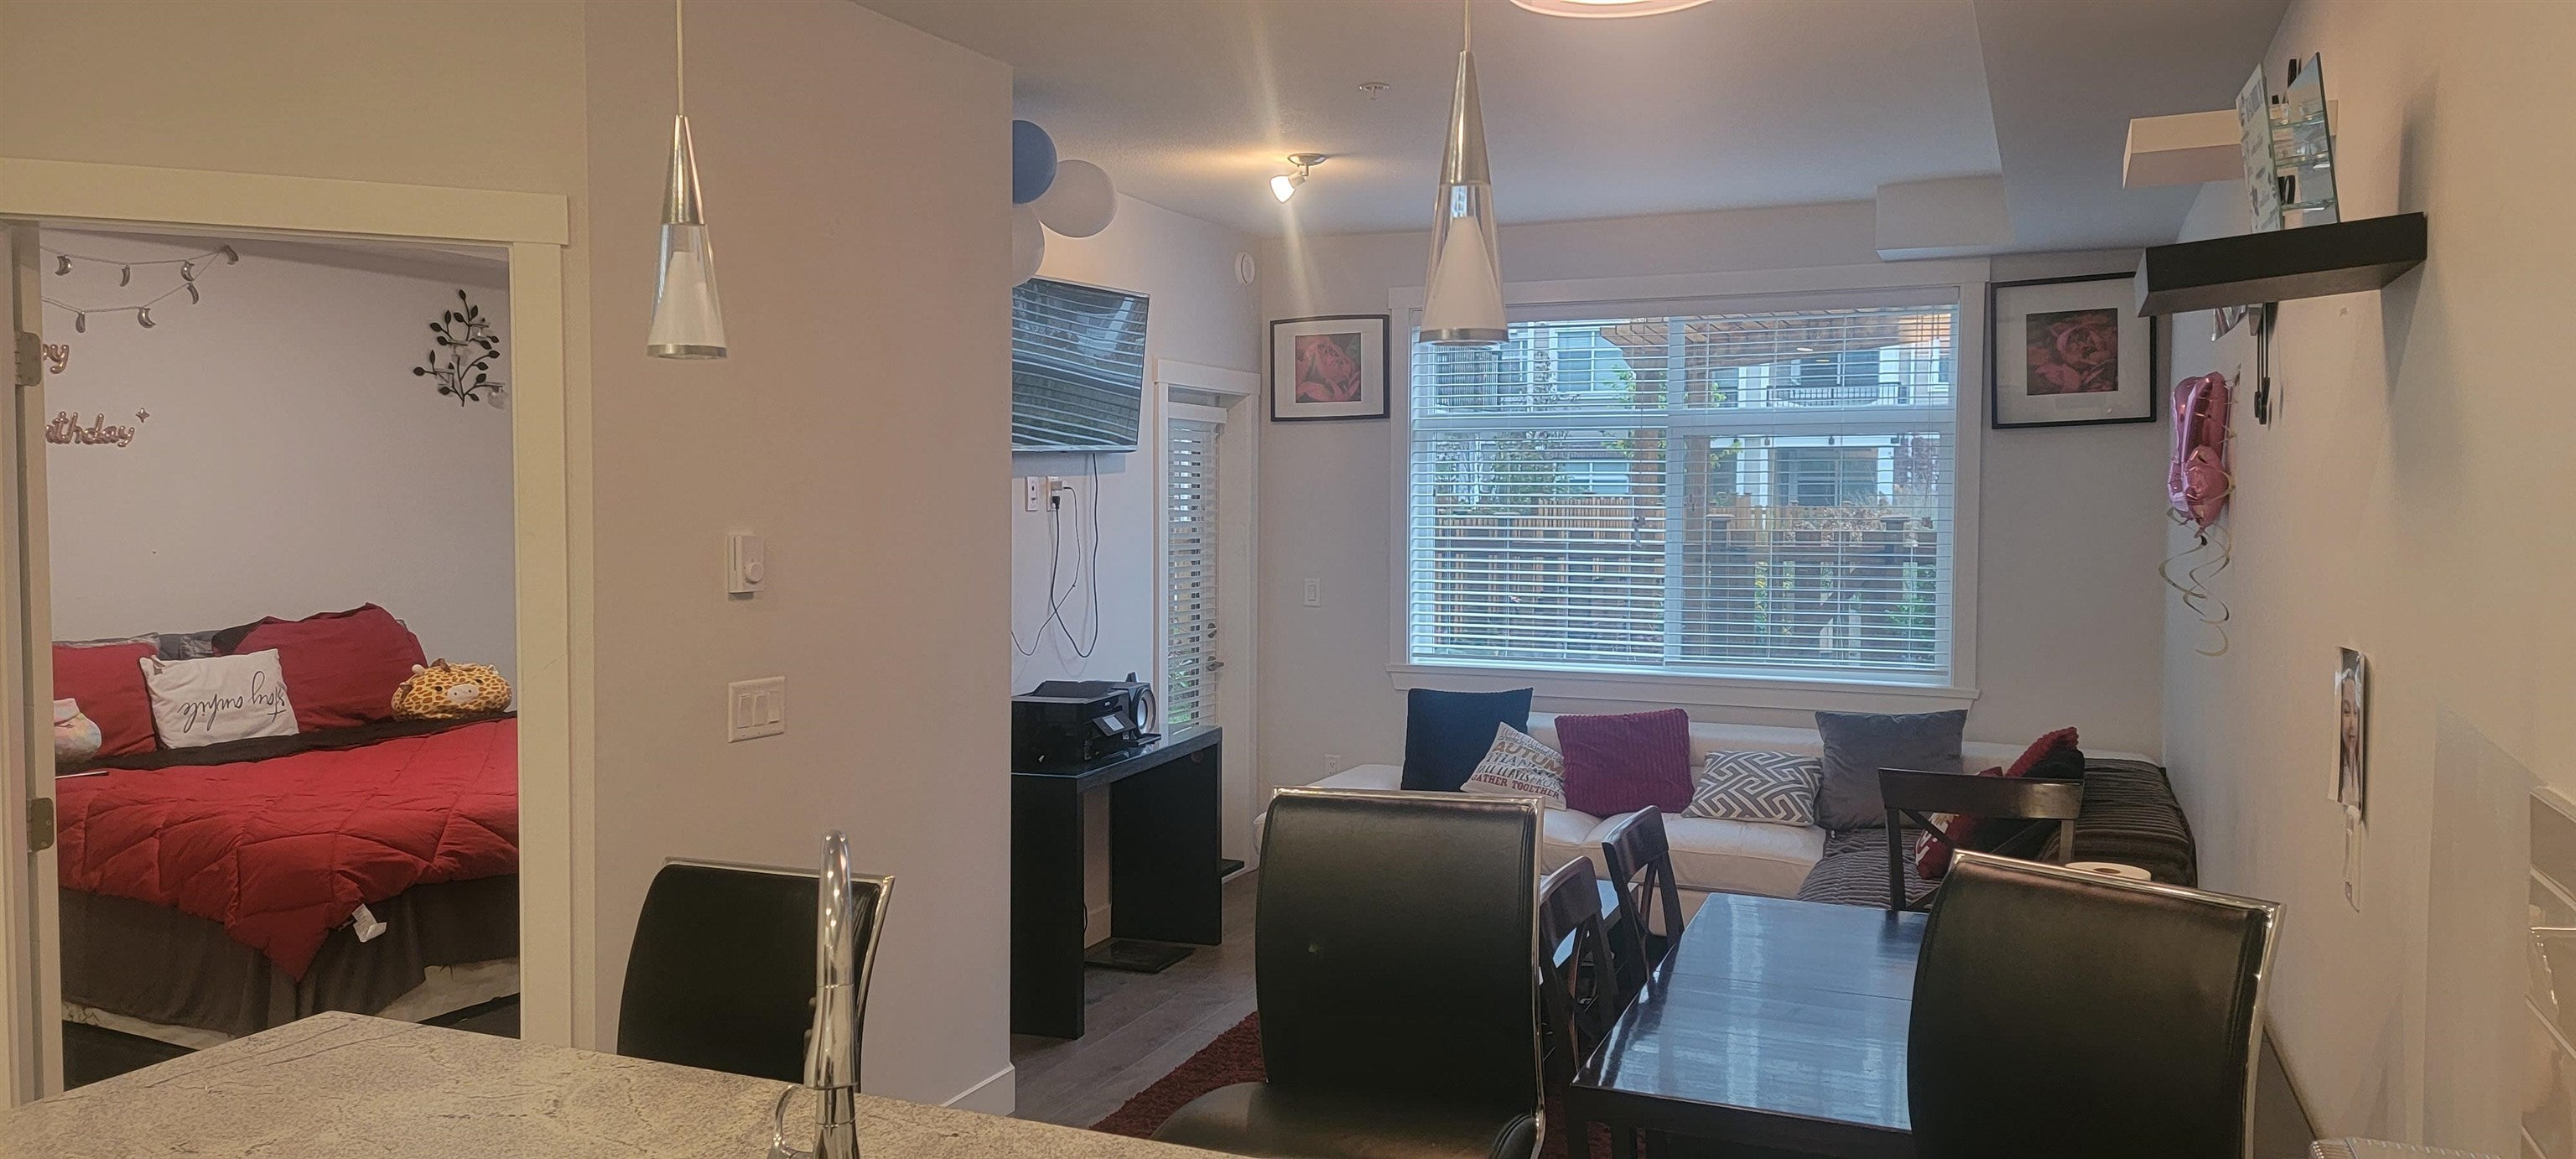 109 20686 EASTLEIGH CRESCENT STREET - Langley City Apartment/Condo for sale, 1 Bedroom (R2616233) - #3